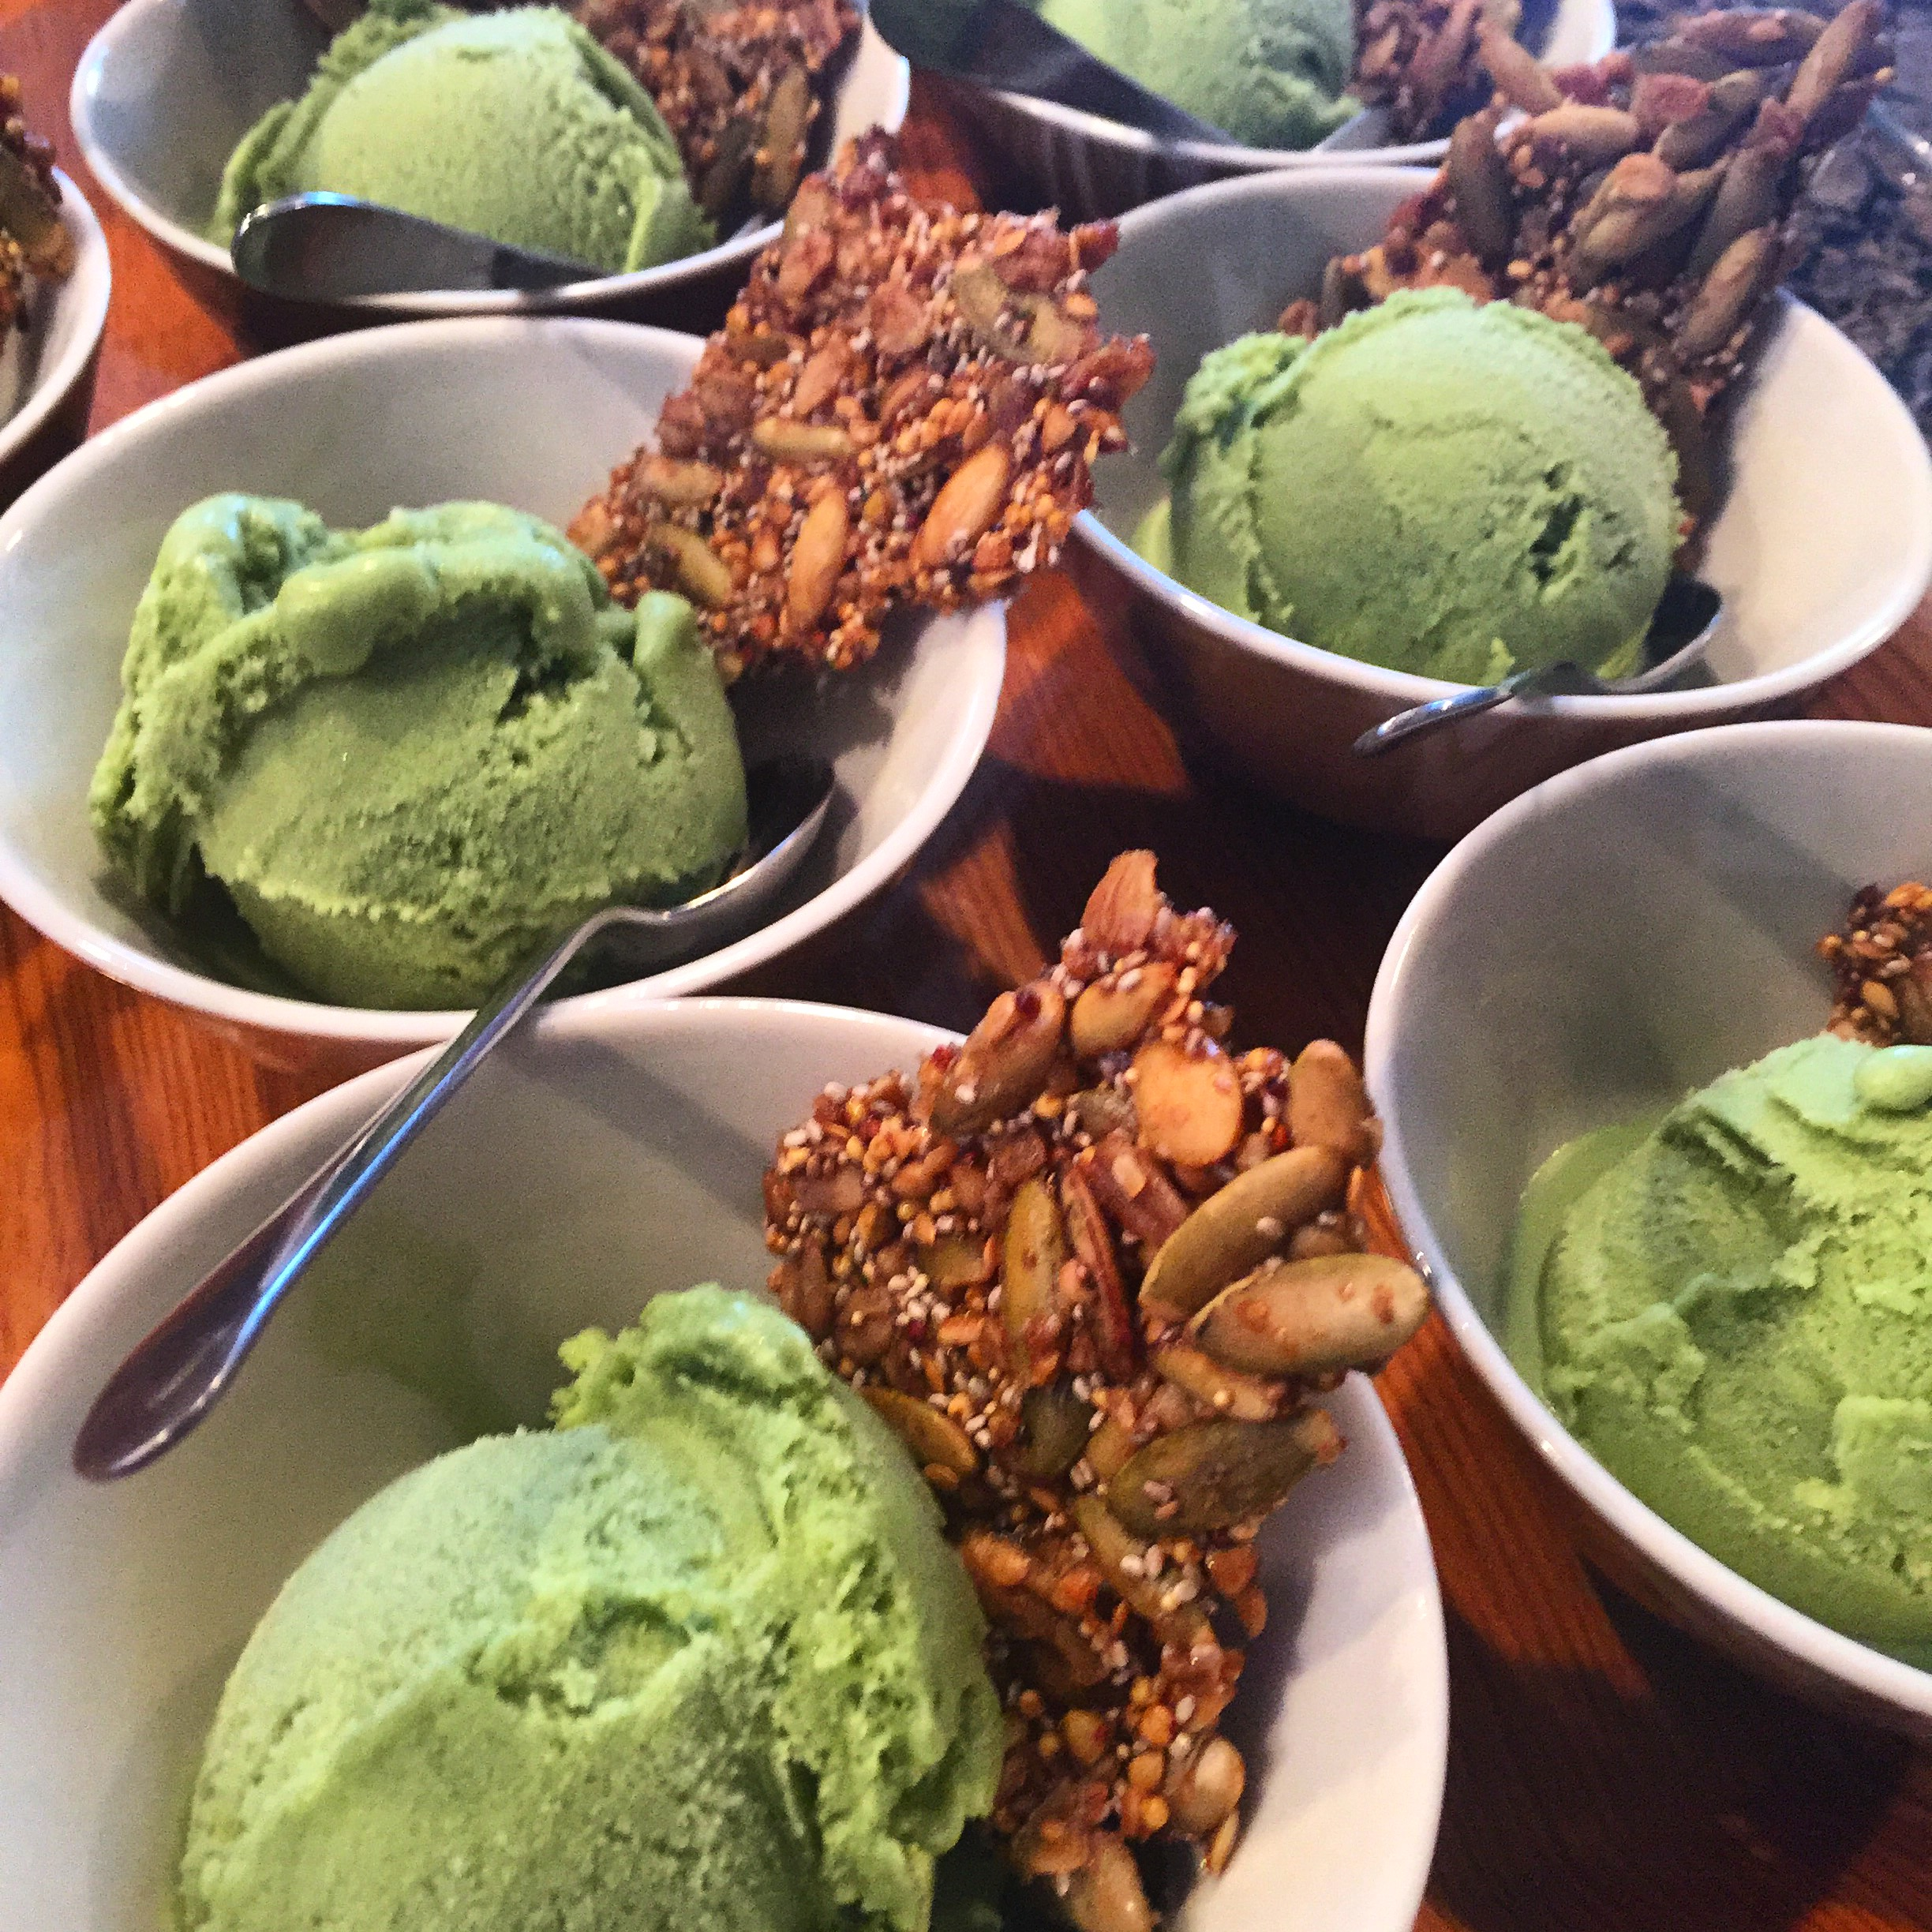 Matcha green tea coconut ice cream topped with maple quinoa brittle